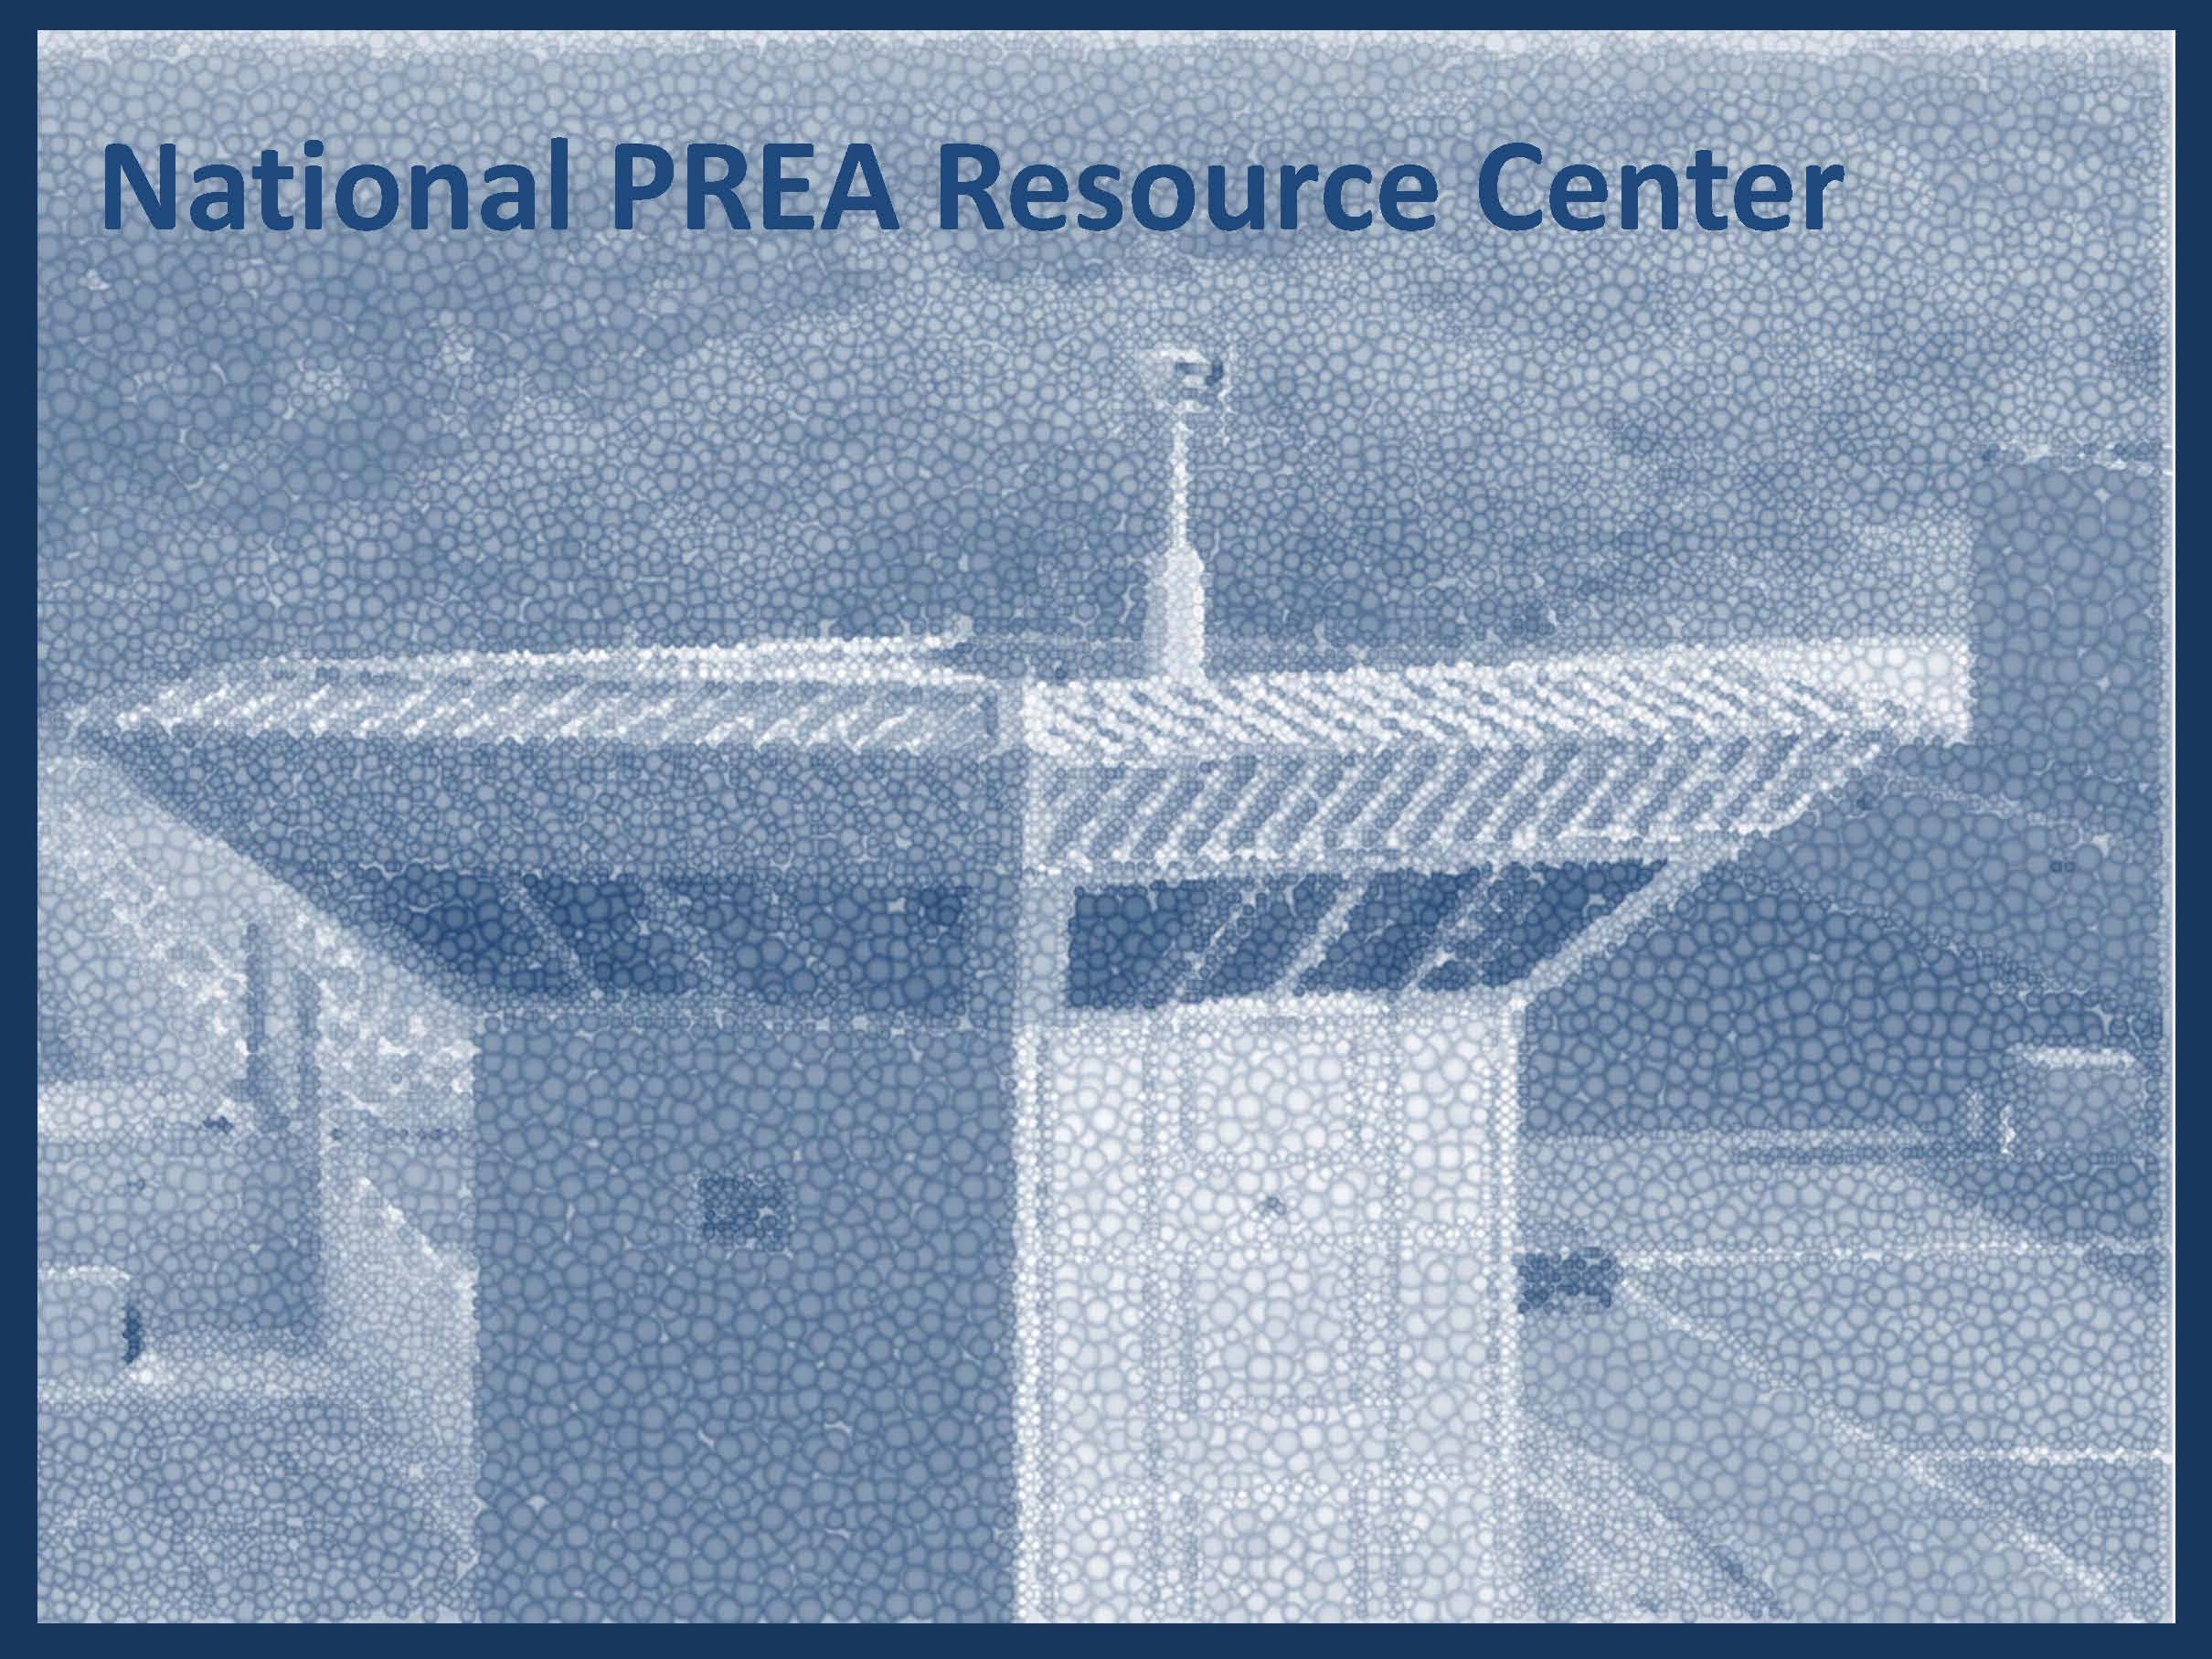 Natl PREA Resource Center